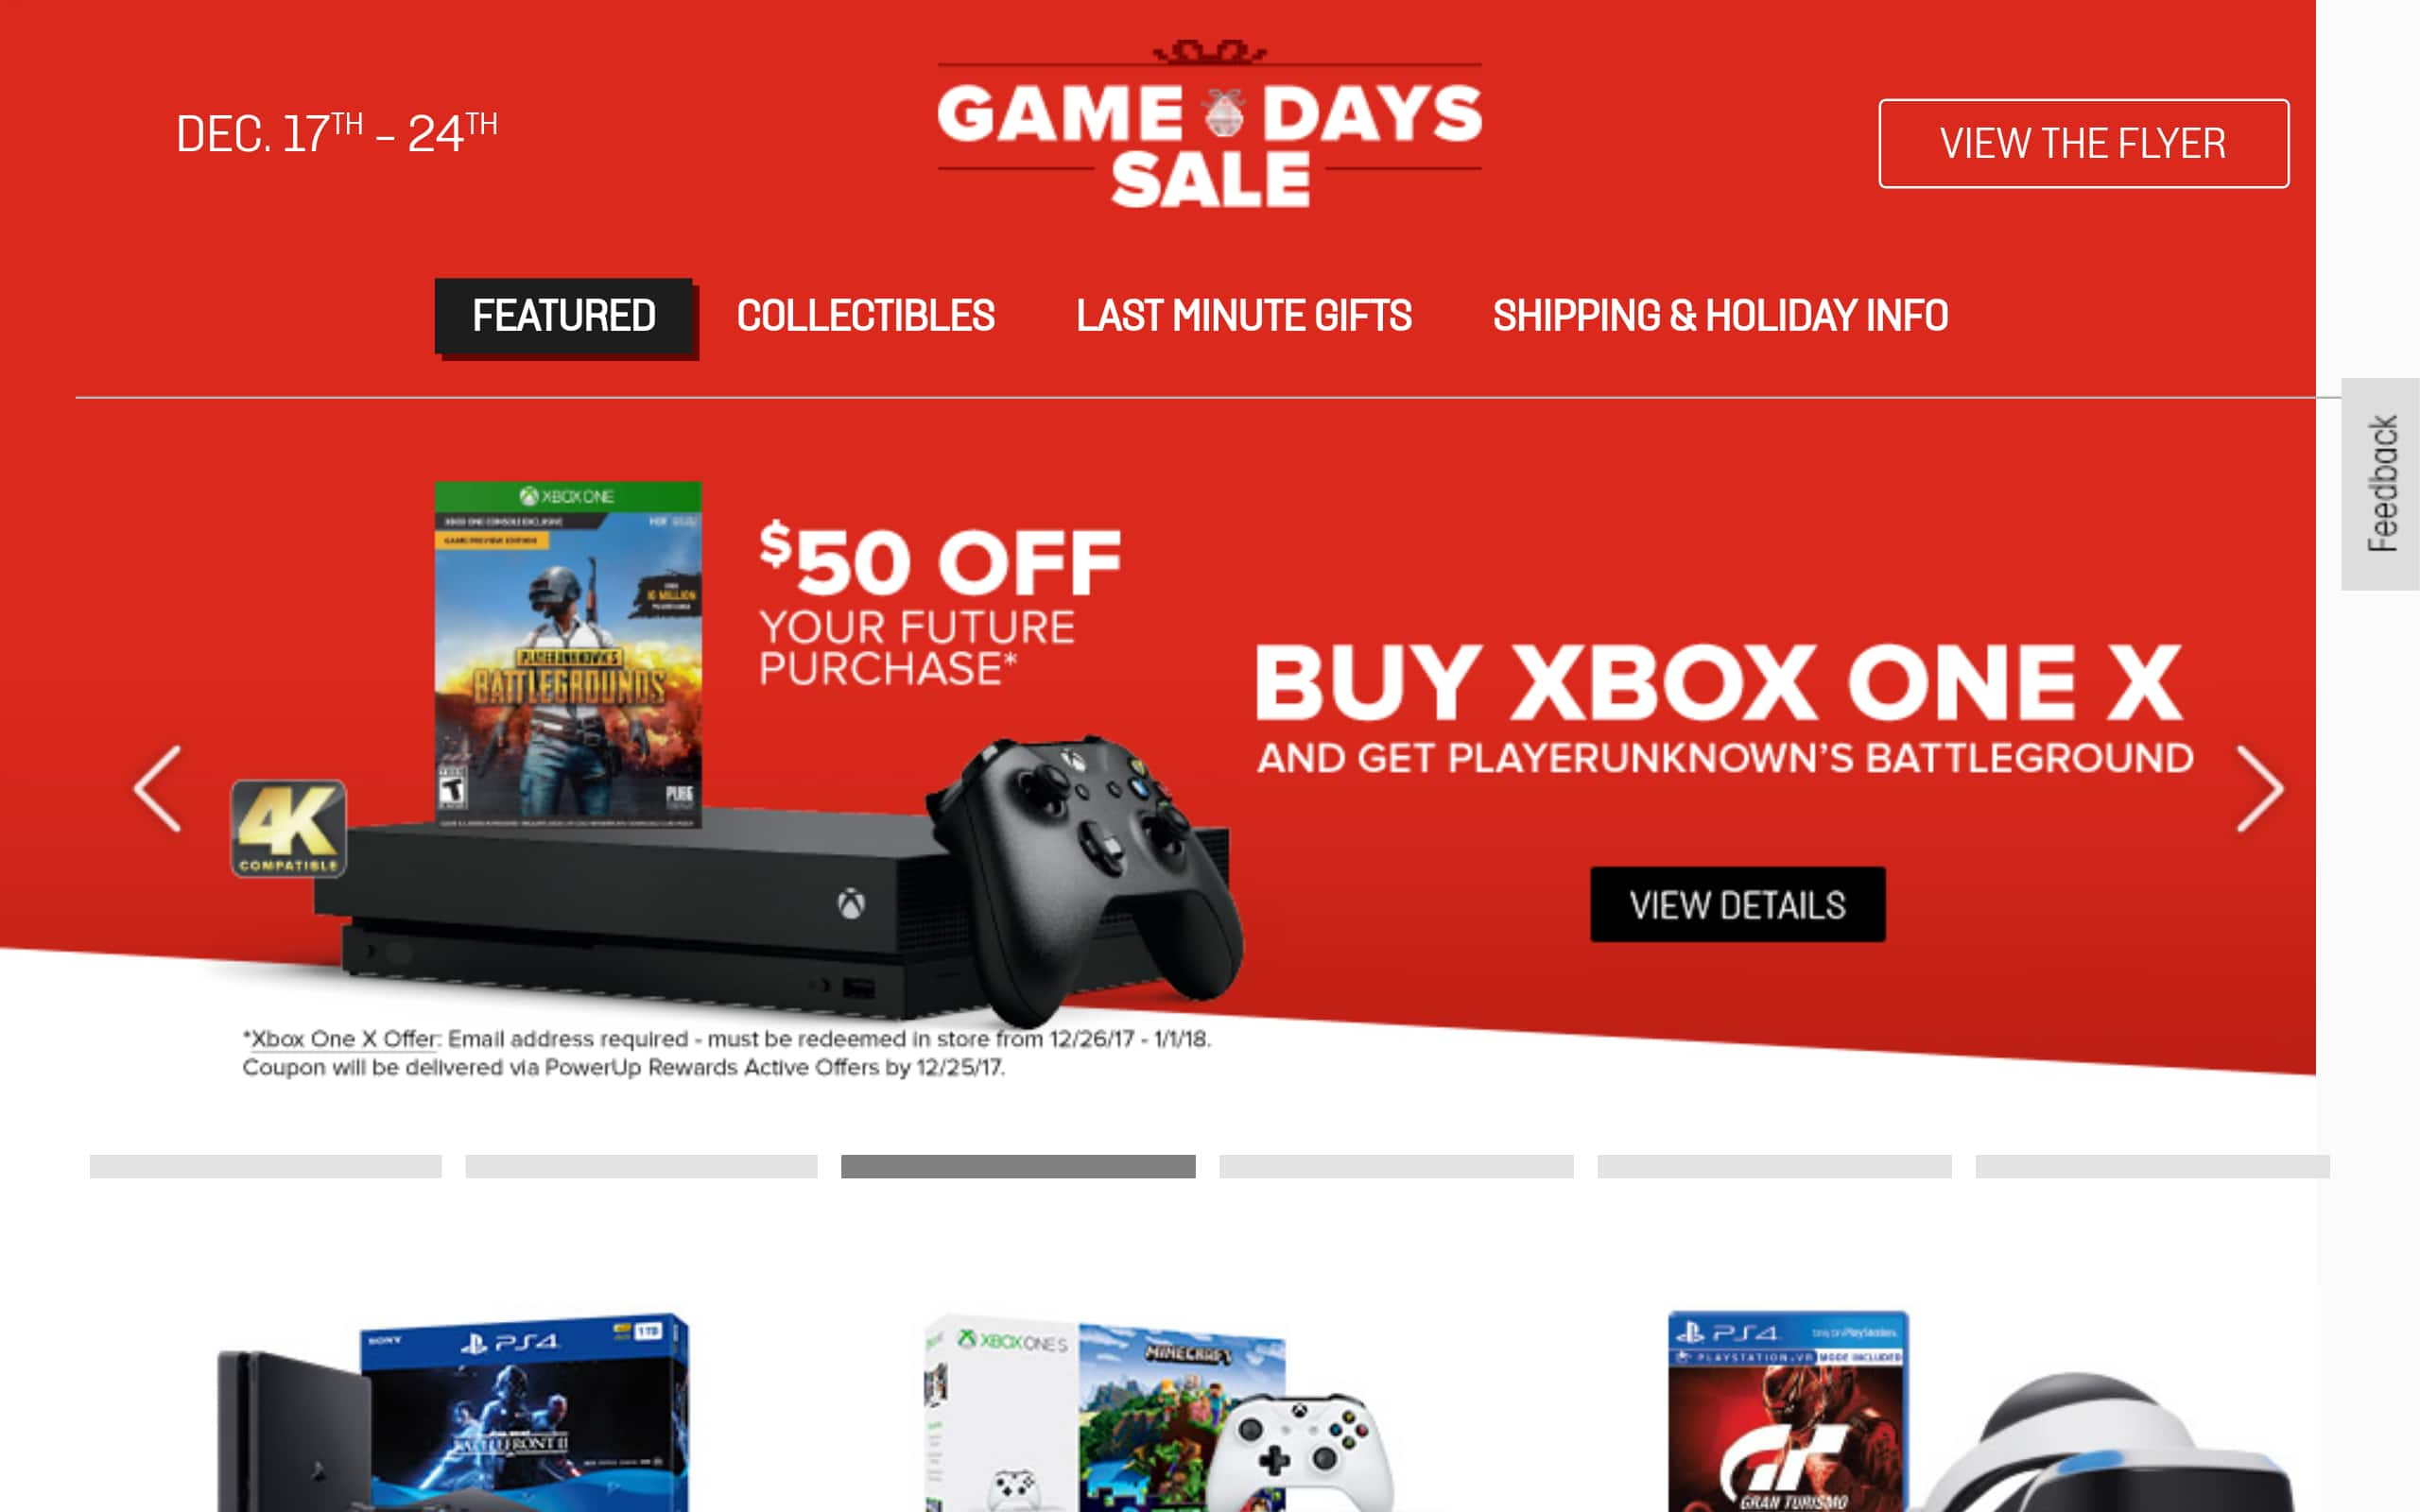 Xbox One X w/ PUBG and $50GC for $499 at GameStop